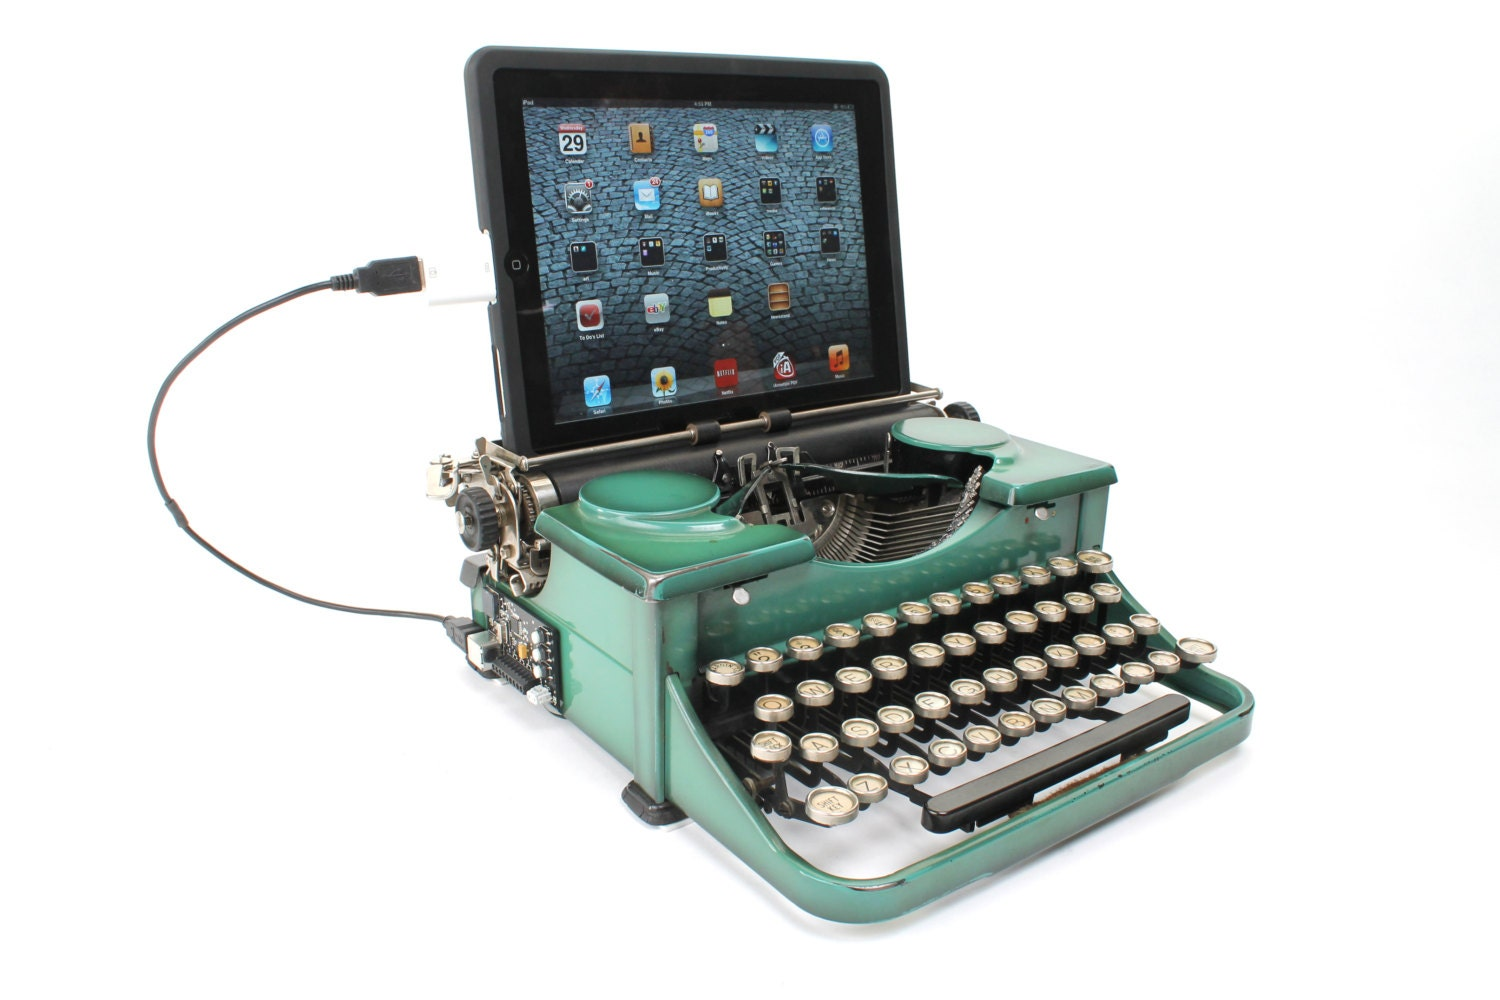 USB Typewriter Computer Keyboard and iPad Dock by ... | 1500 x 1000 jpeg 186kB